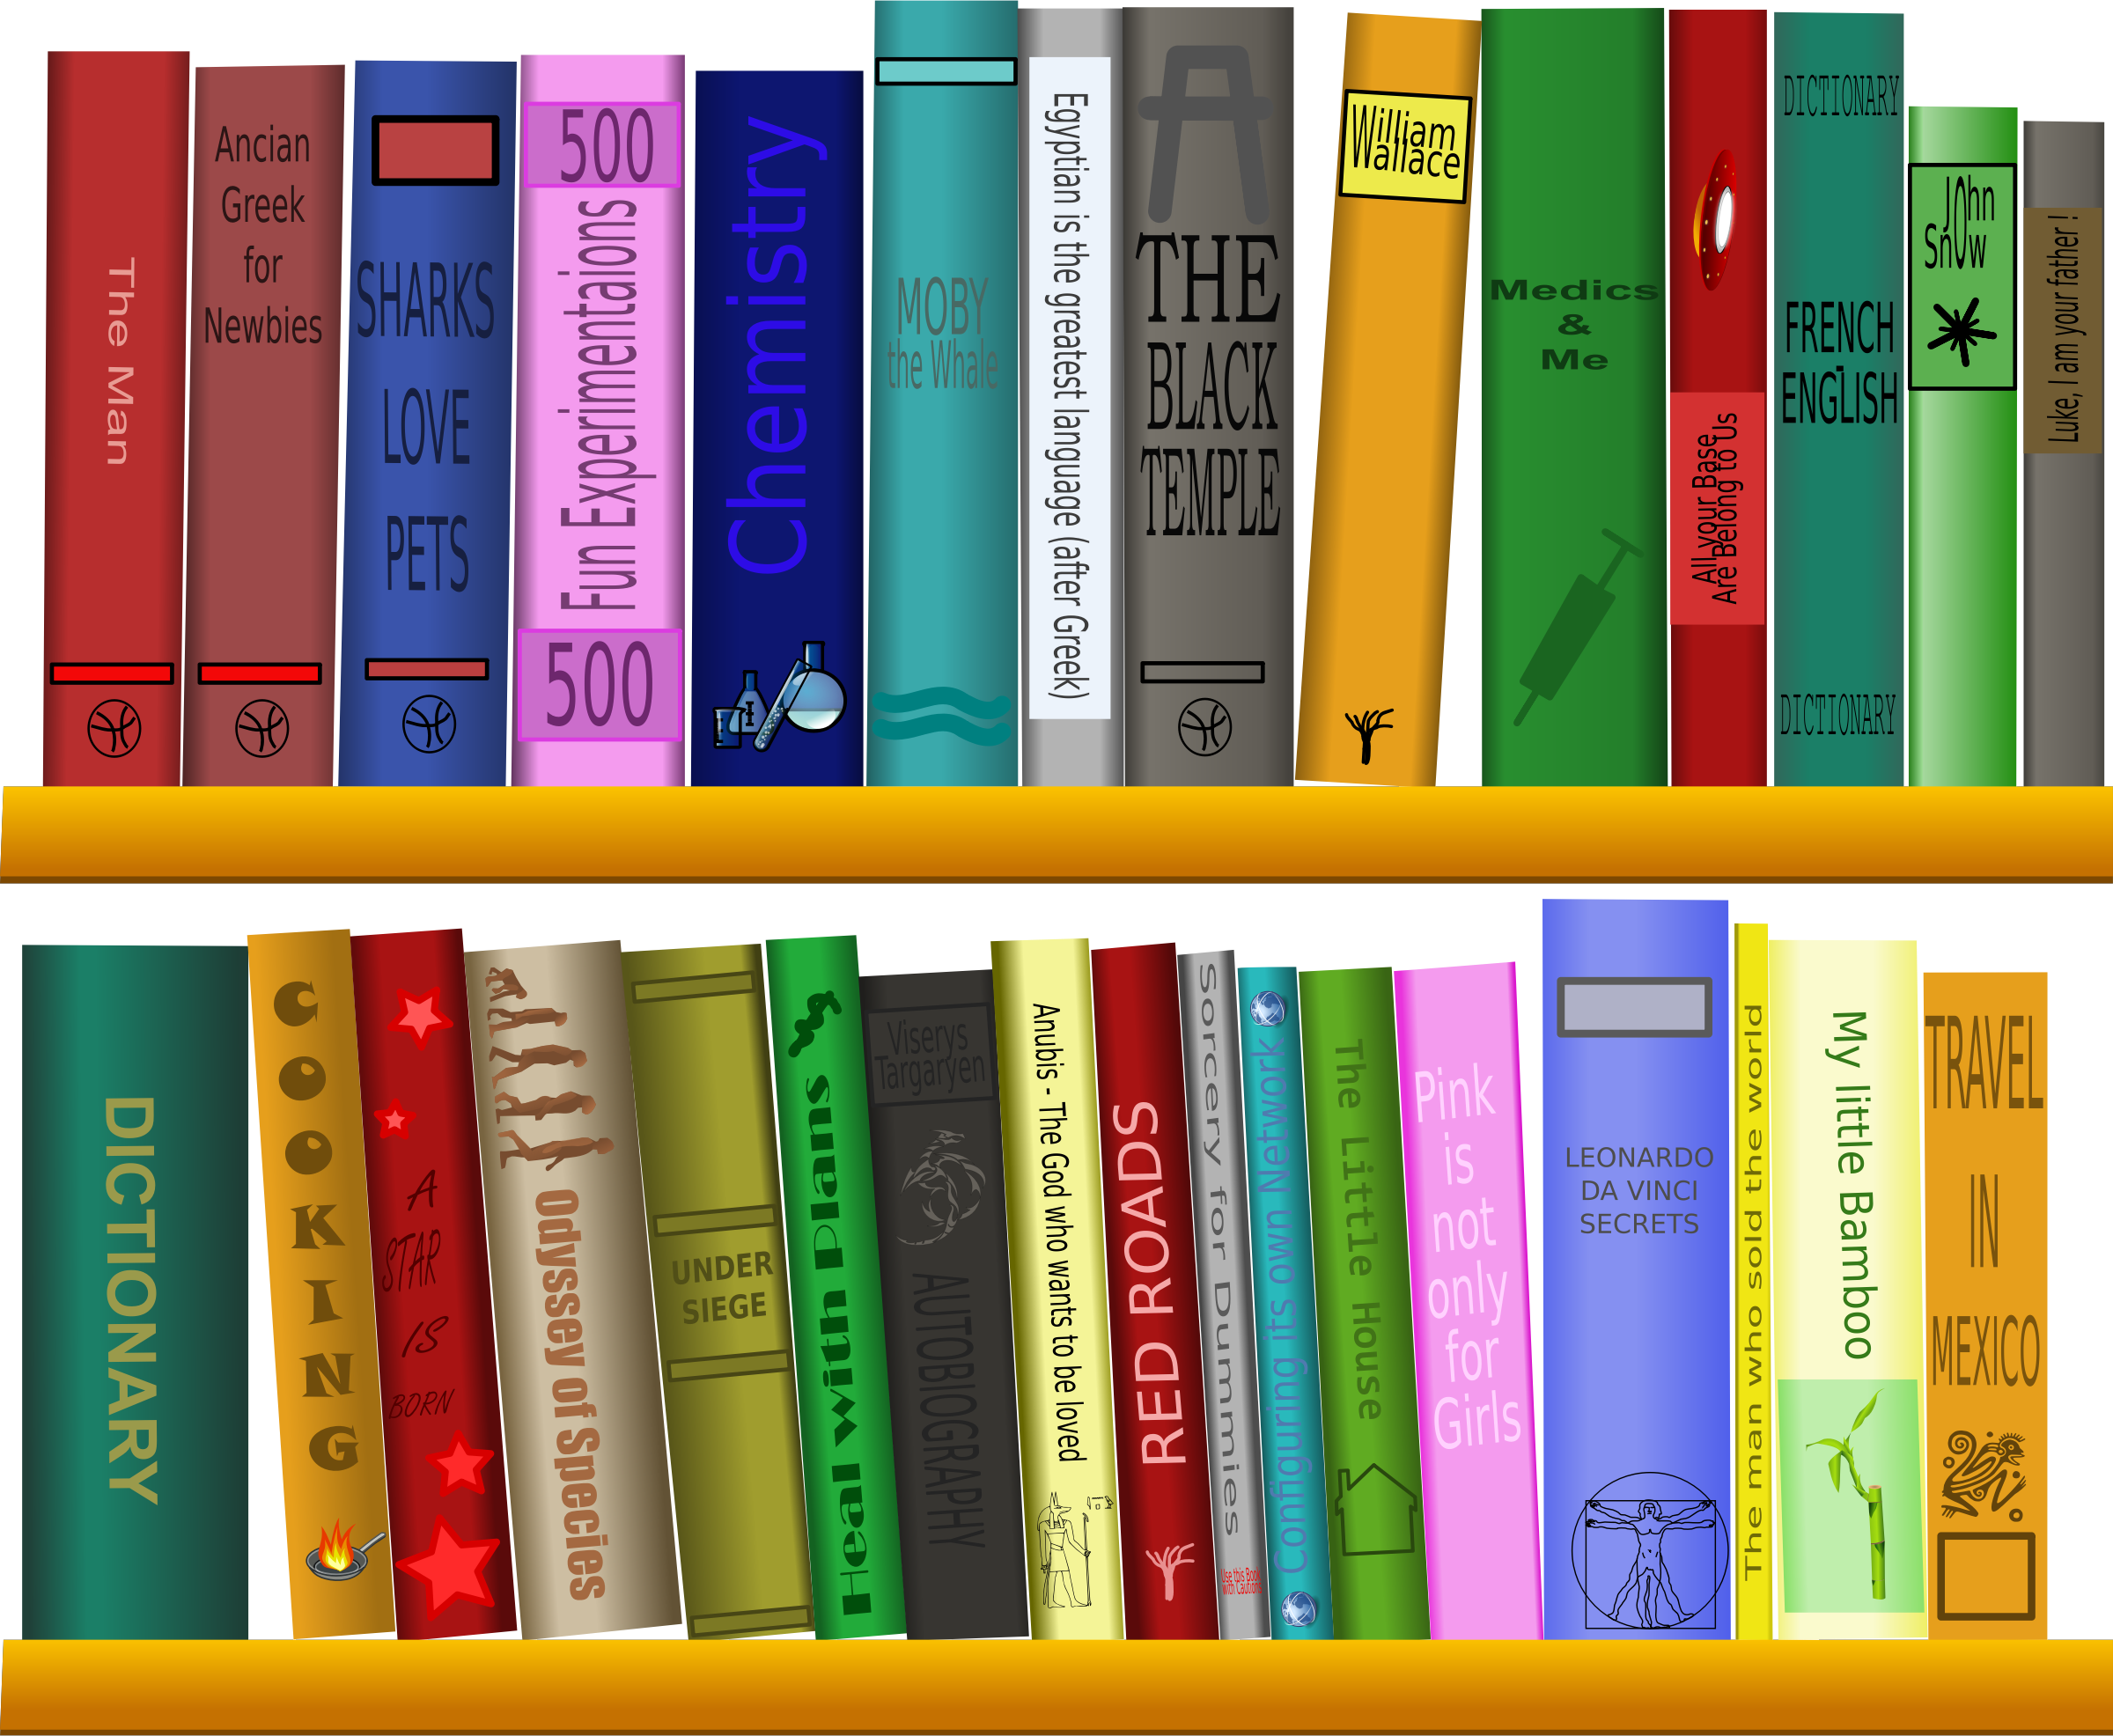 Library clipart bibliotheque Titles Clipart titles to paths